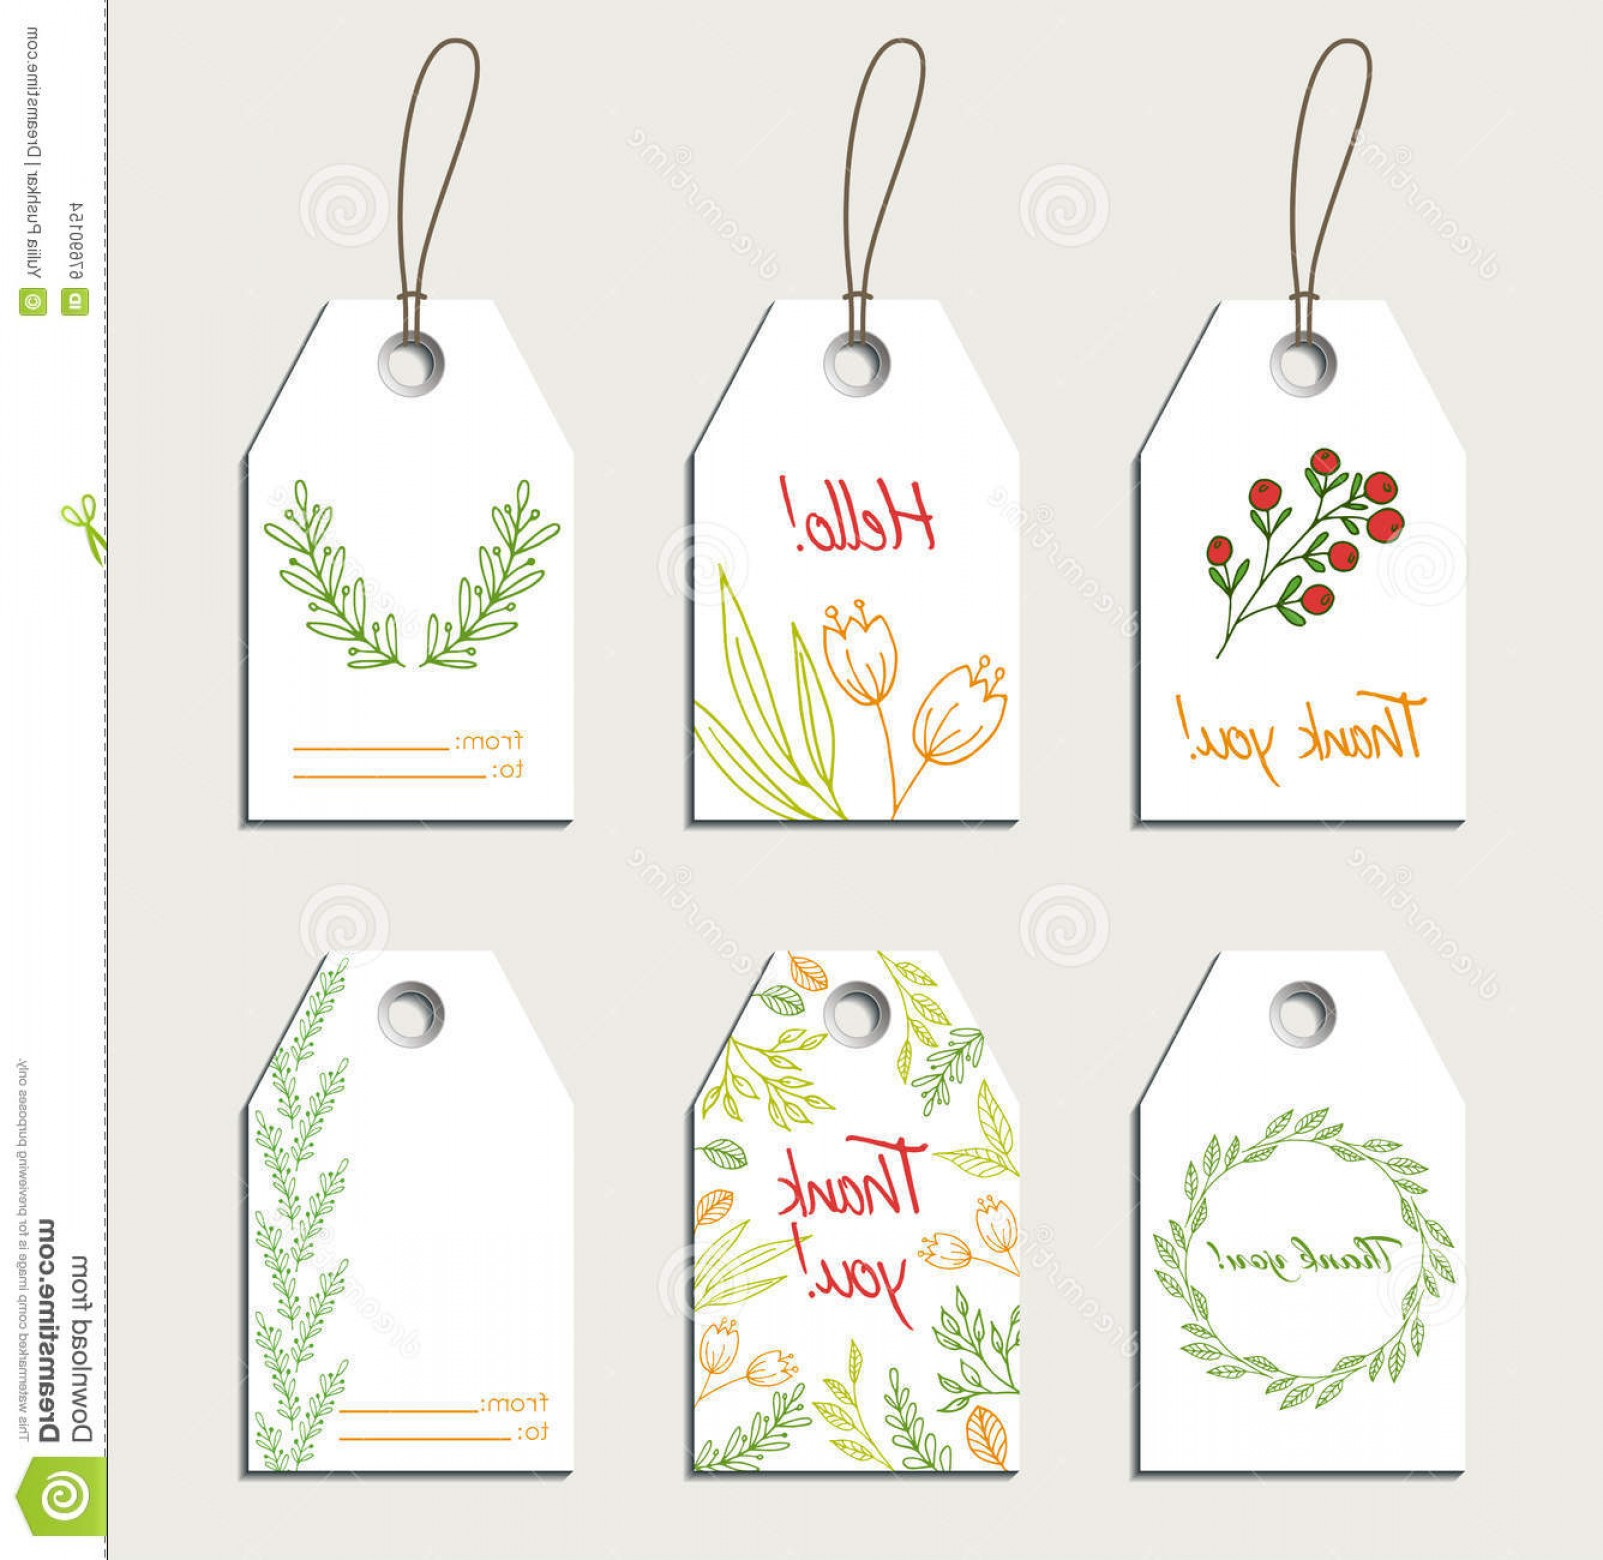 Gift Tags Vector Art: Stock Illustration Set Vector Floral Gift Tags Thank You Cards Image